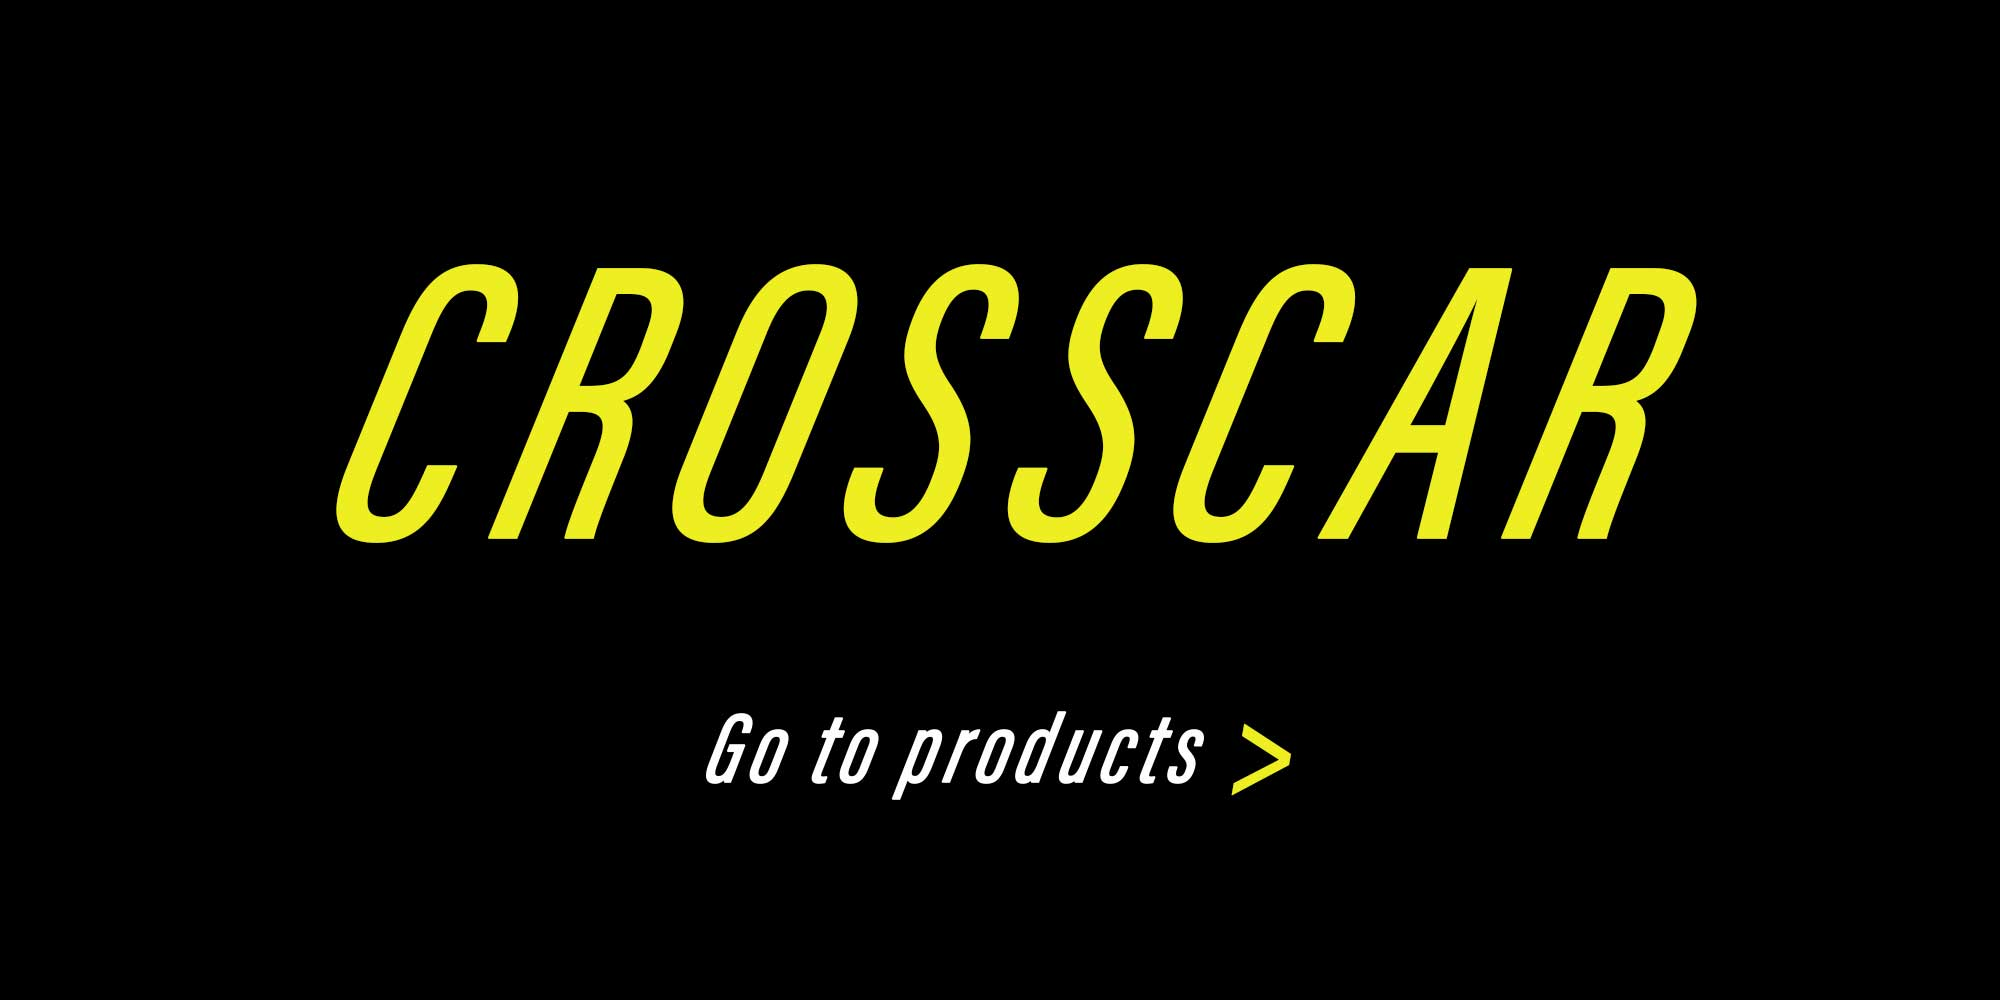 Crosscar products